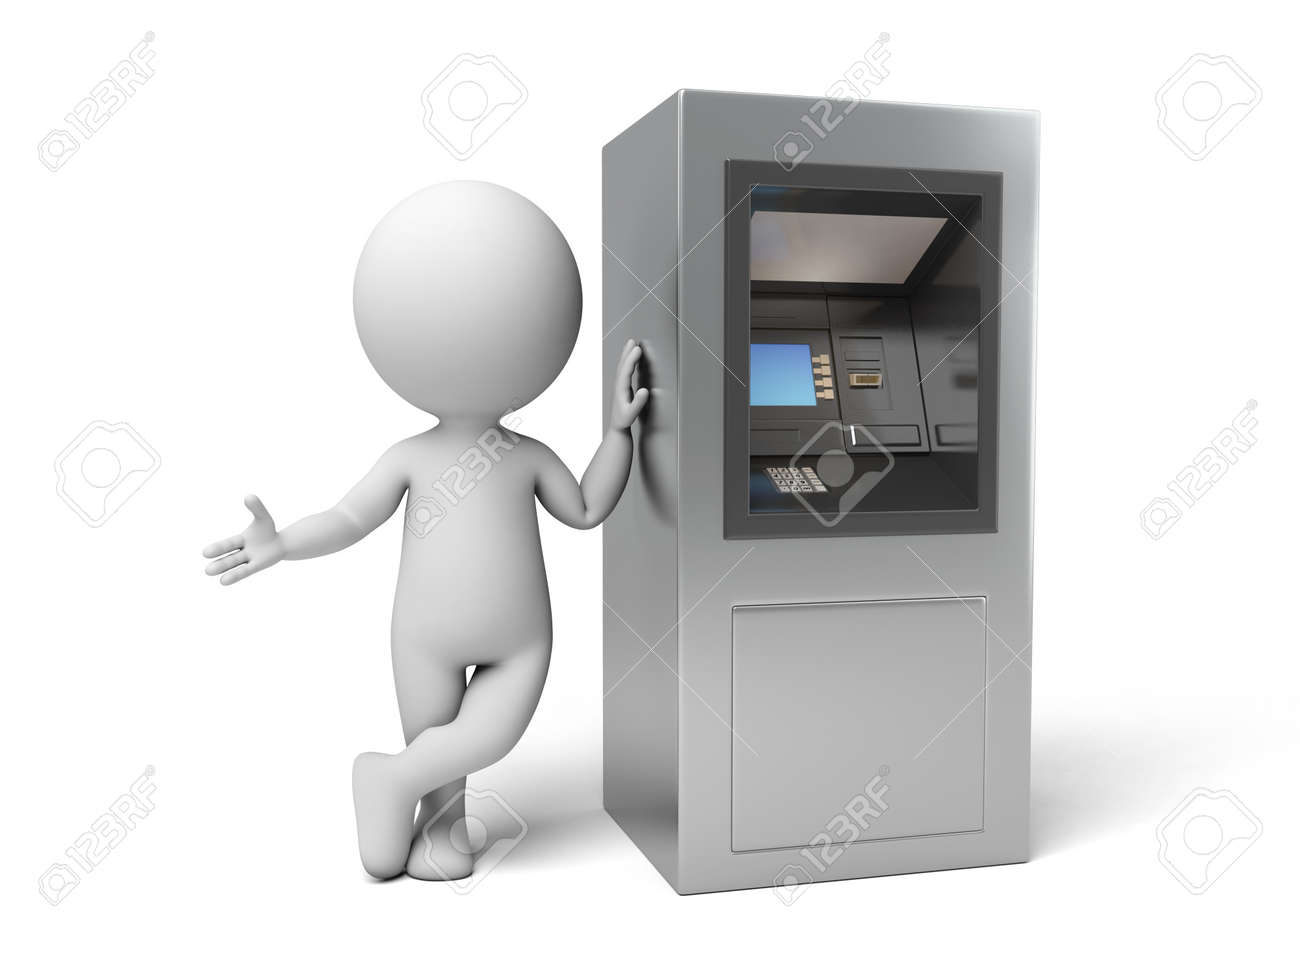 A 3d people with a ATM. 3d image. Isolated white background - 37817810